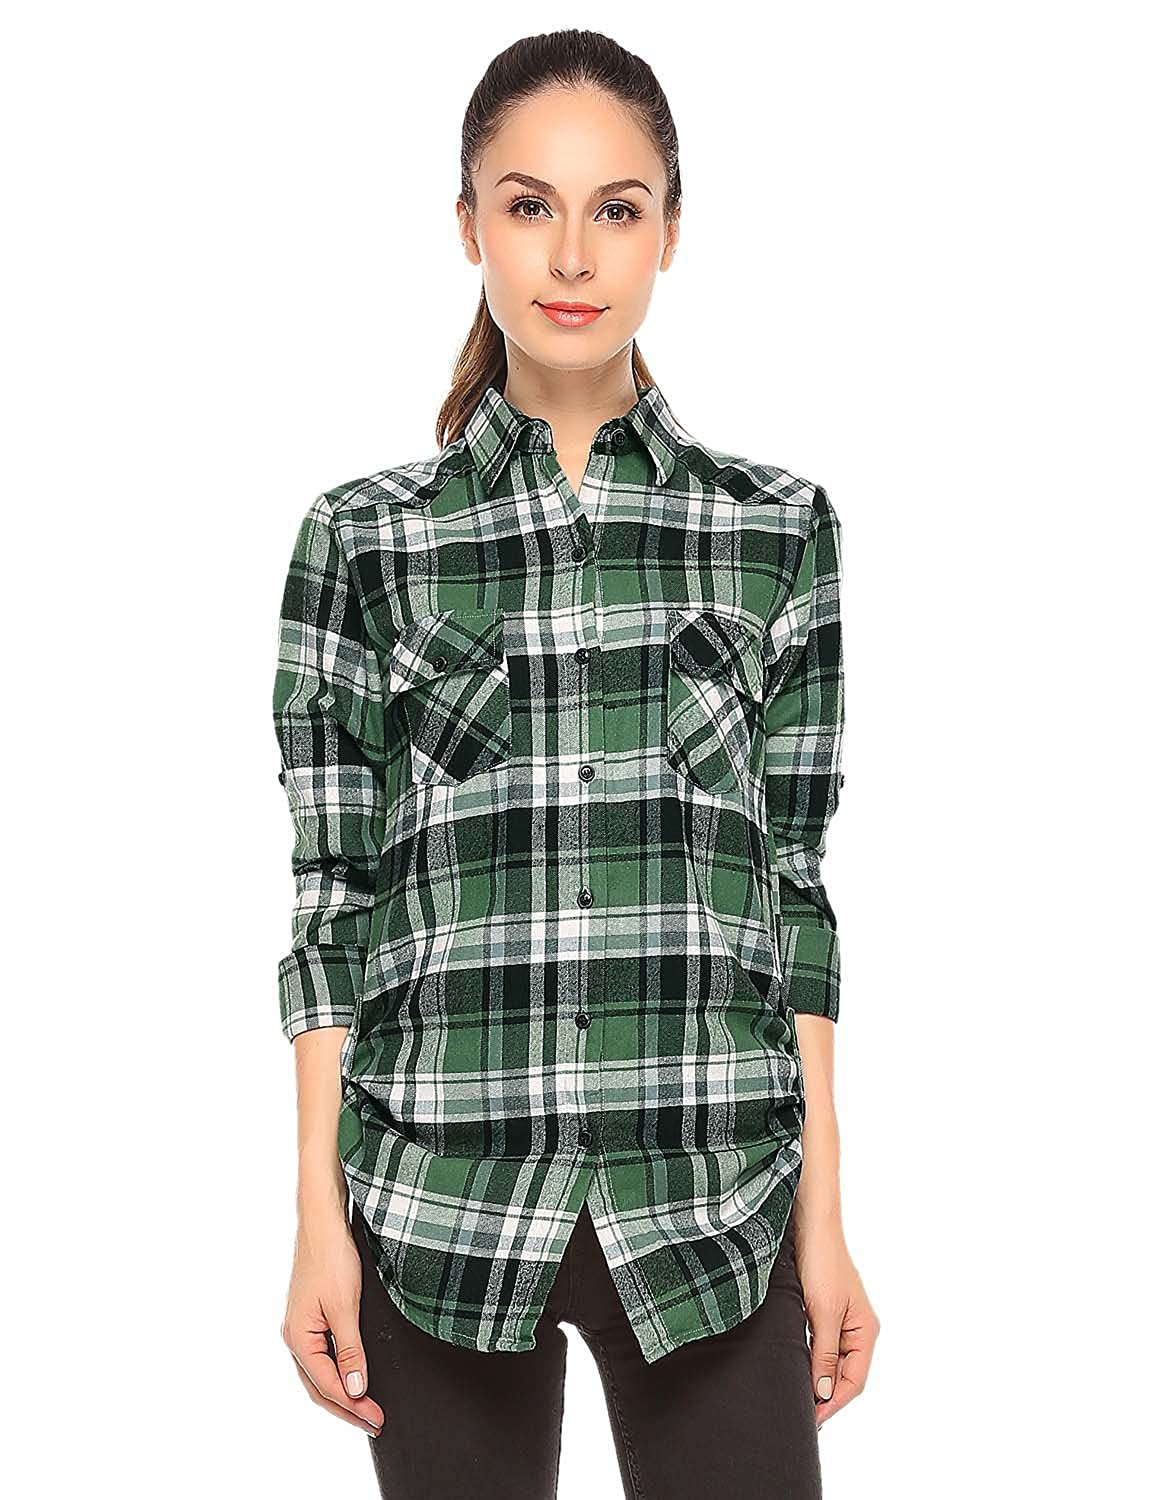 Checks 3 Match Women's Long Sleeve Flannel Plaid Shirt